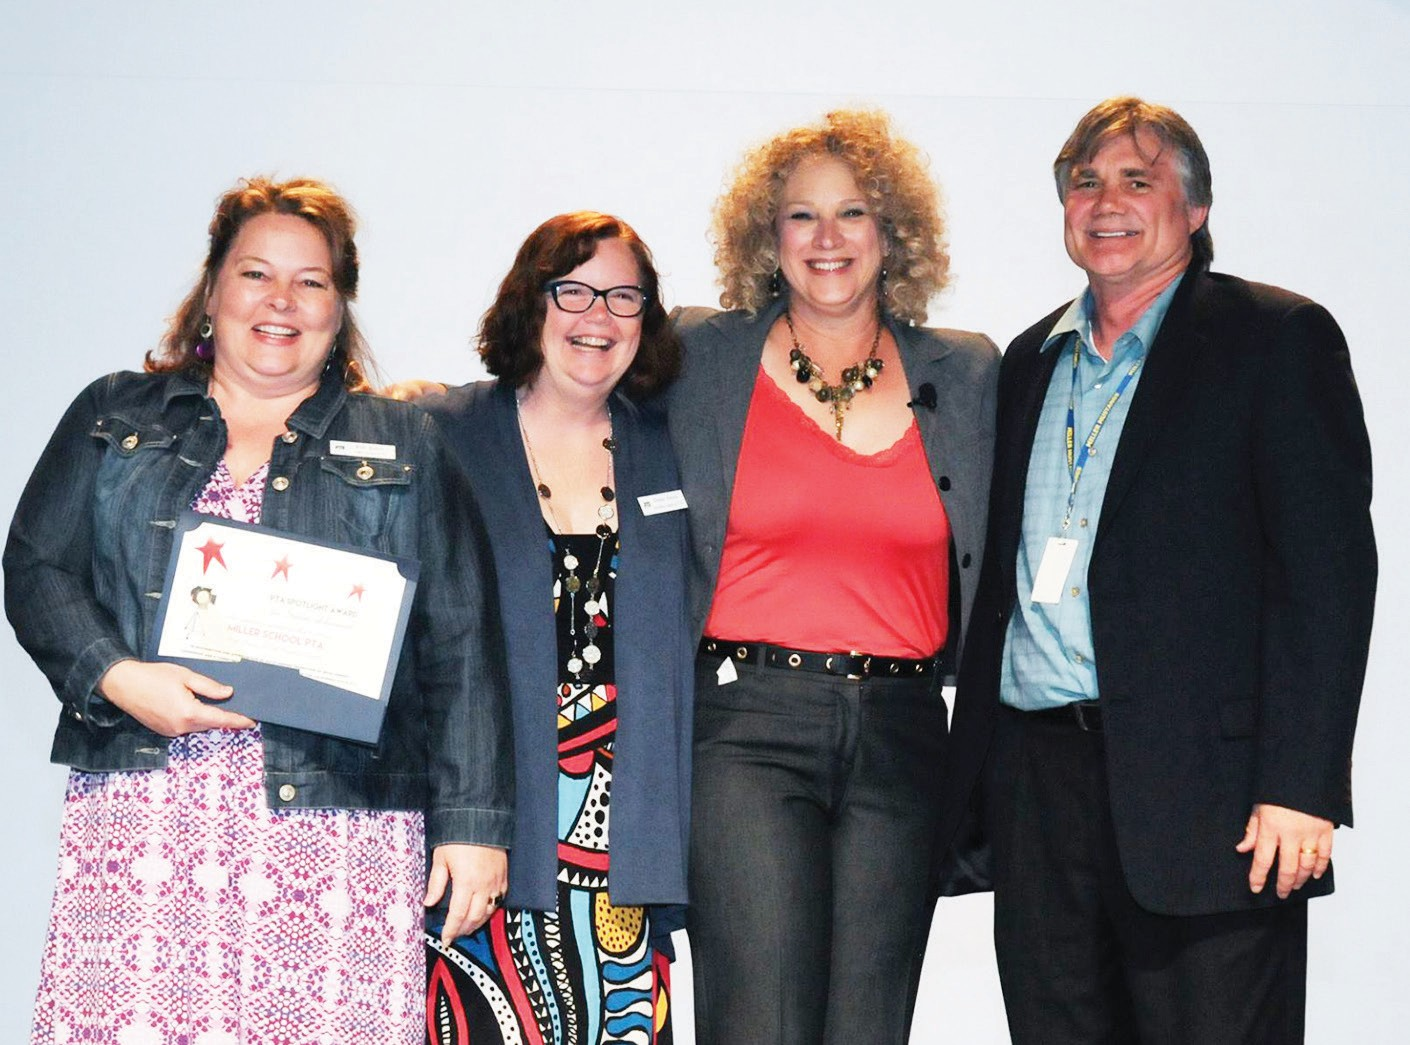 Miller Elementary PTA receives Spotlight Award at Annual California PTA Convention. From left to right: Kathleen Jones, art docent; Denae Senise, art docent; Justine Fisher, California PTA presi­dent; Marty Hranek, principal.